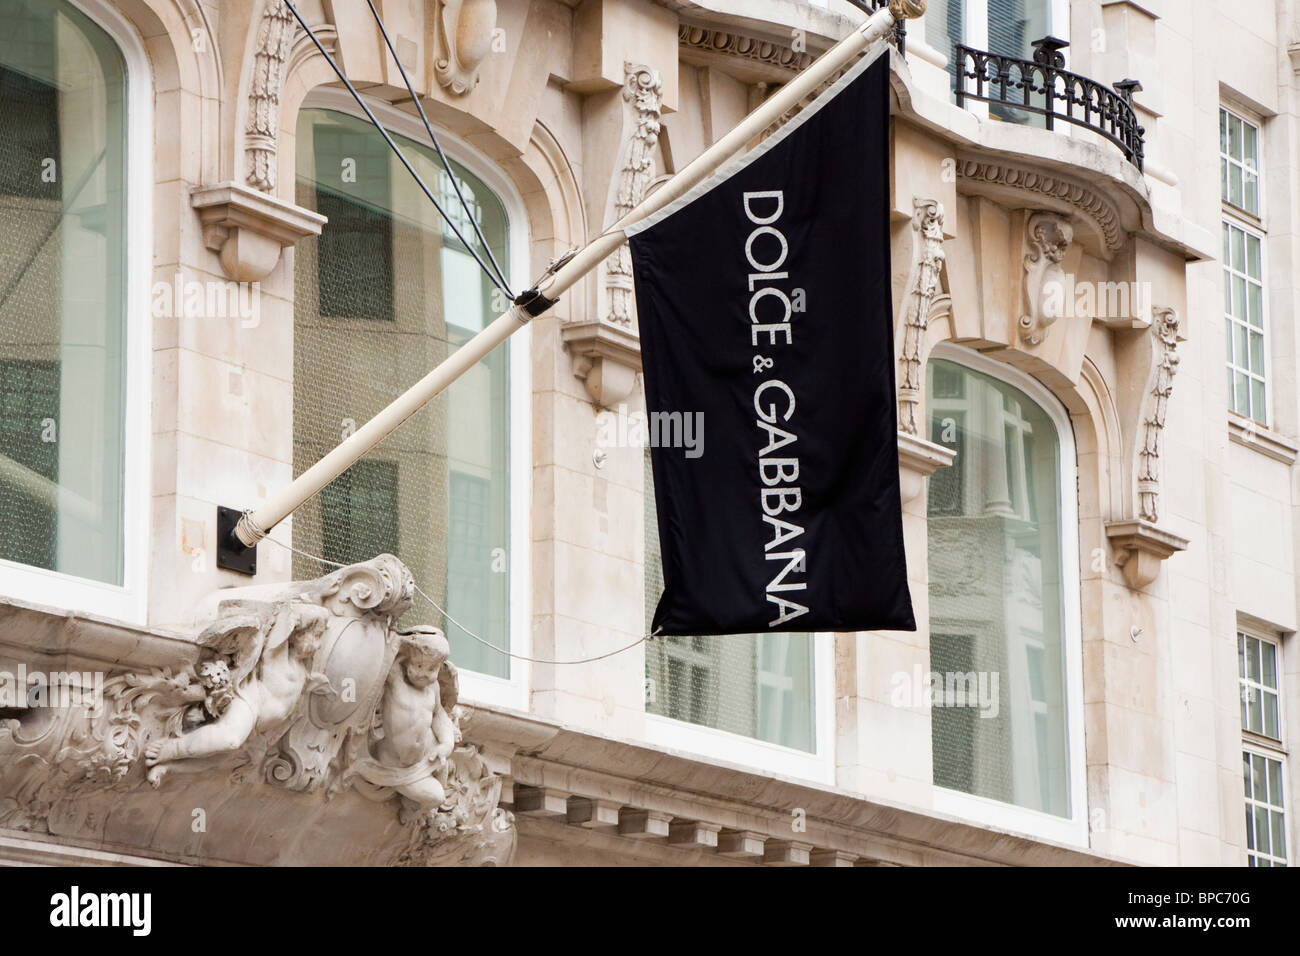 Dolce & Gabbana store, 24 Old Bond Street, London, England - Stock Image